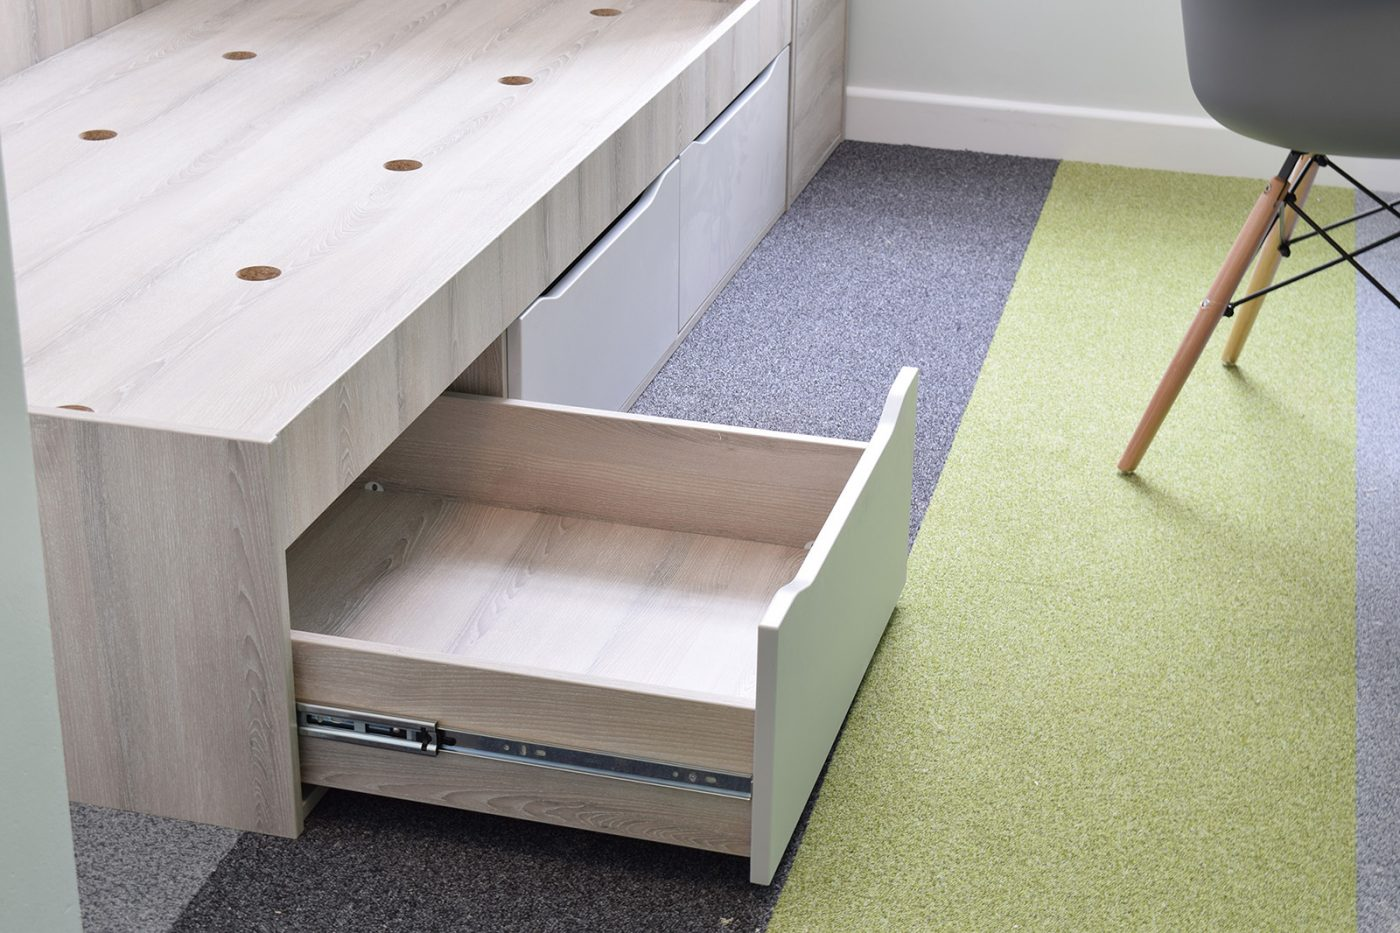 bedroom furniture, student accommodation furniture, under bed drawers, roll out drawers